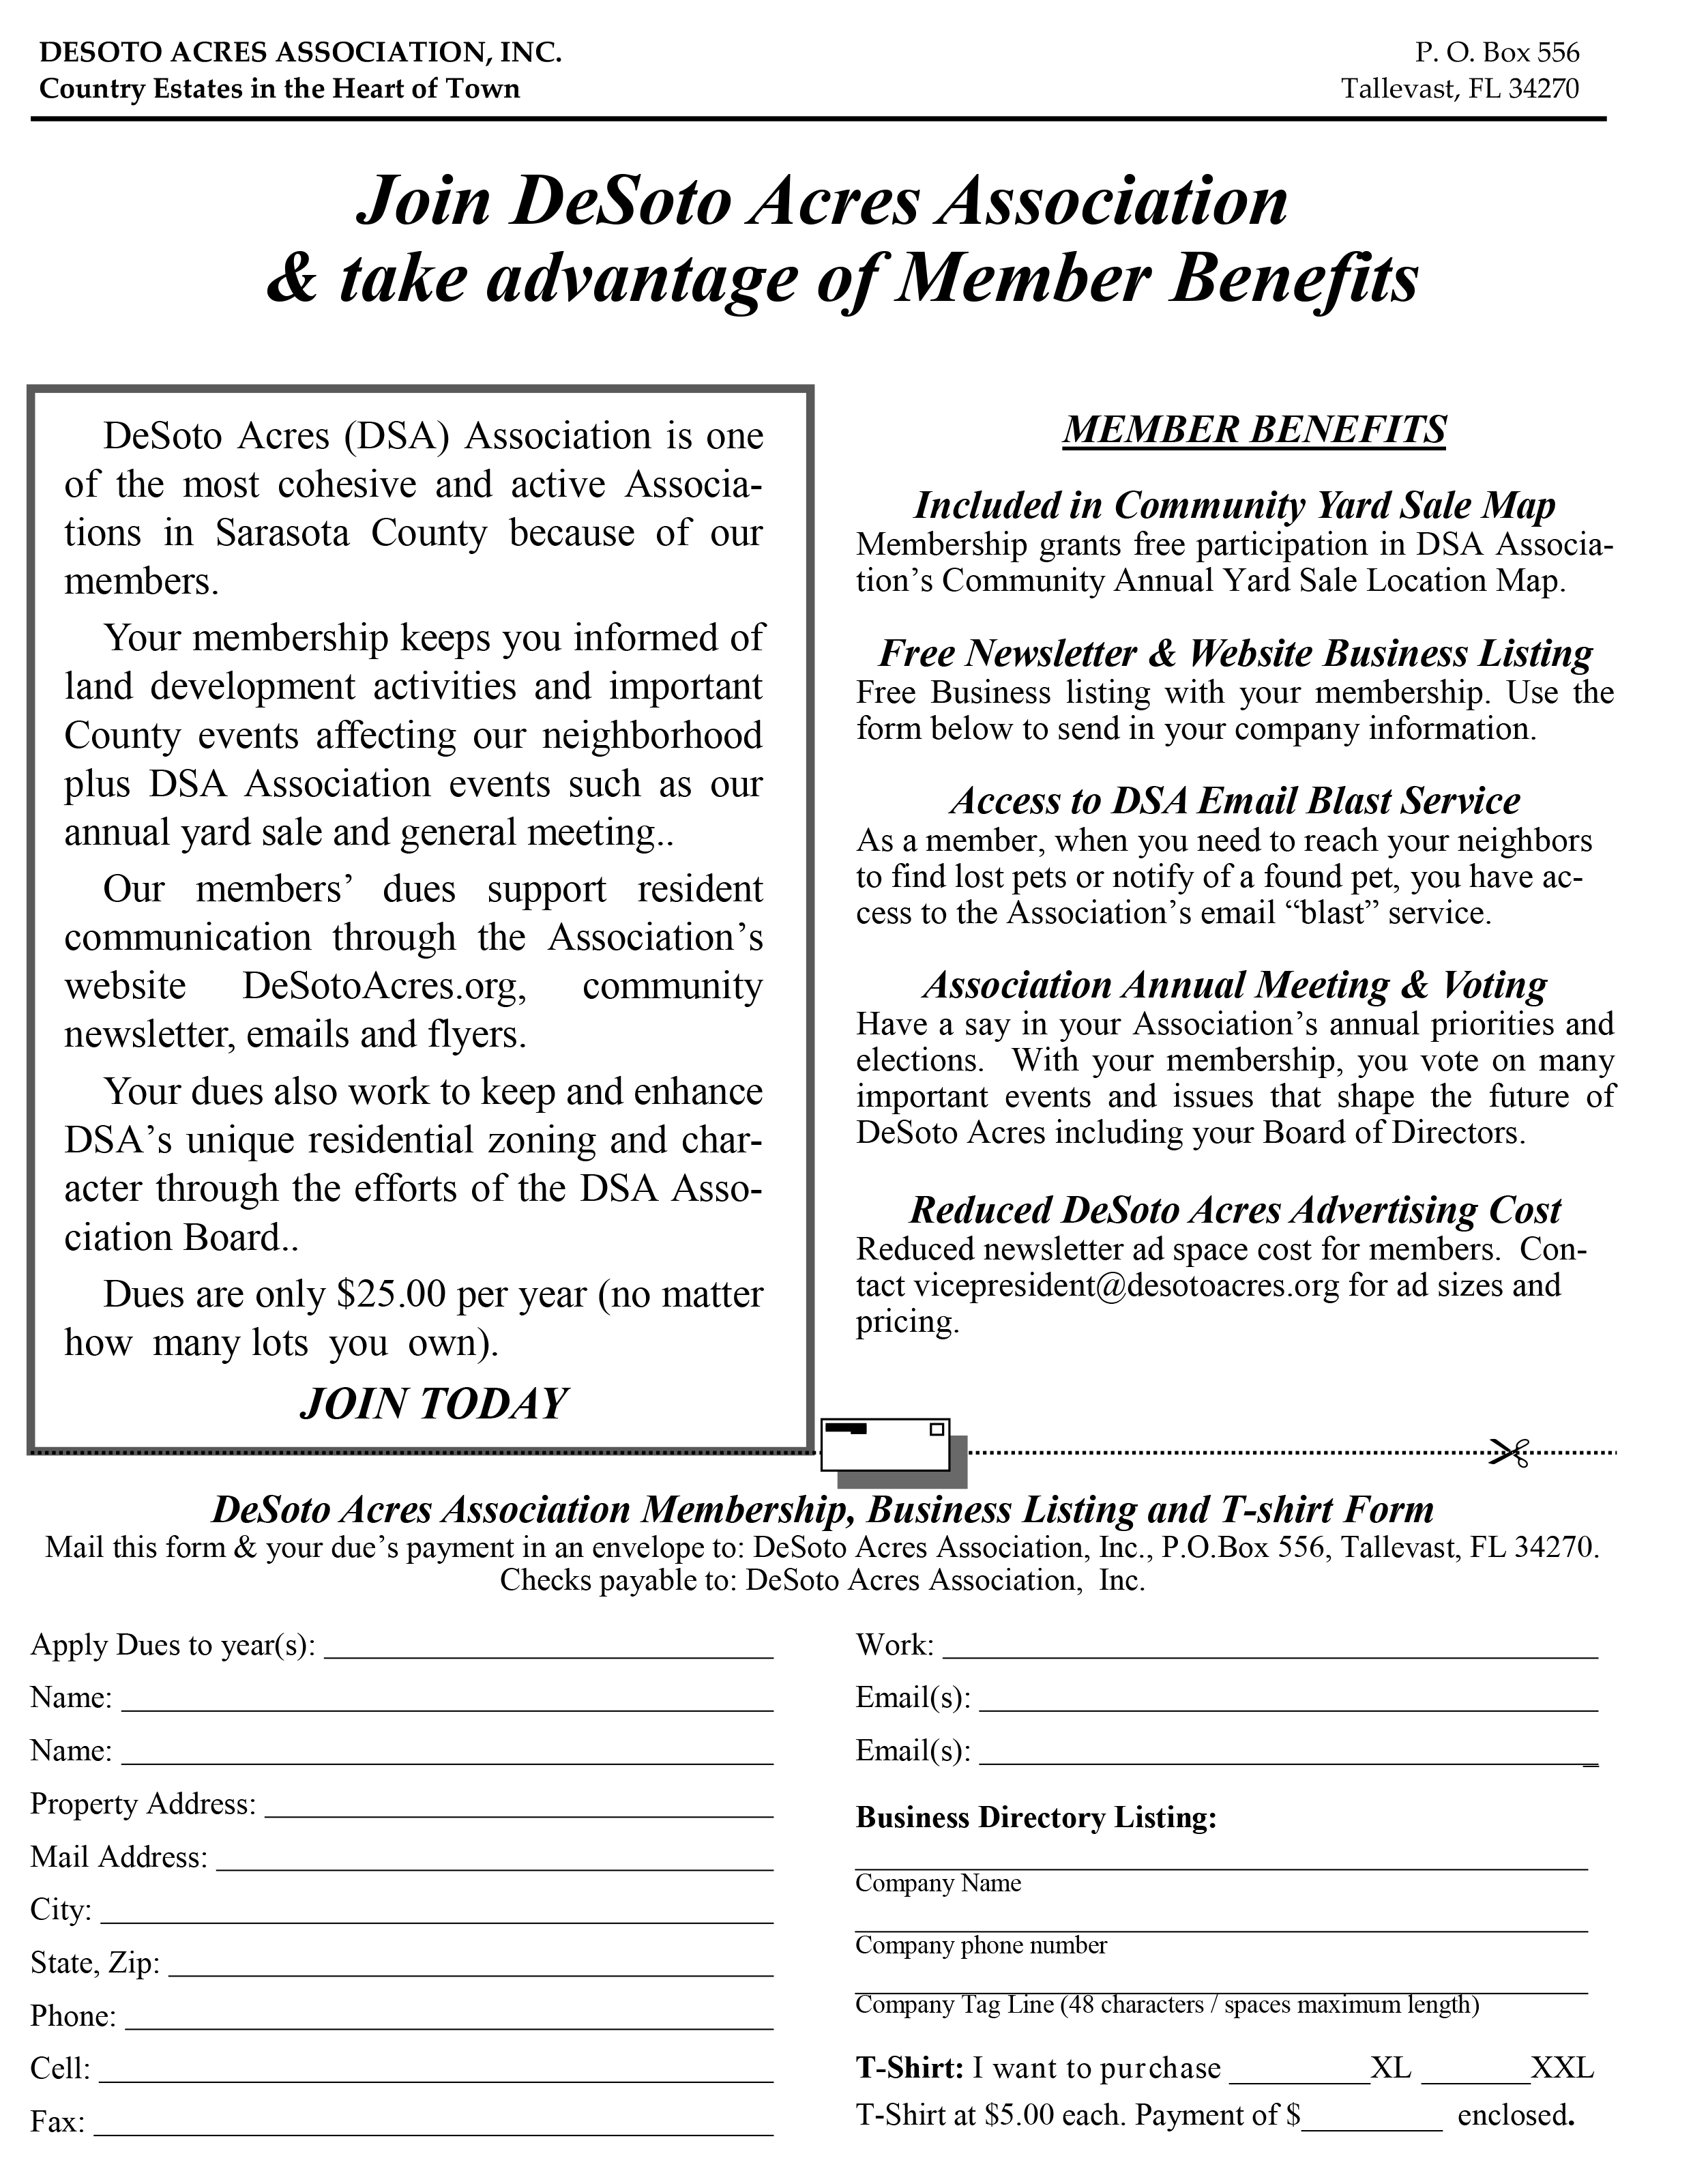 DeSoto Acres Association Membership Form  Membership Forms Templates